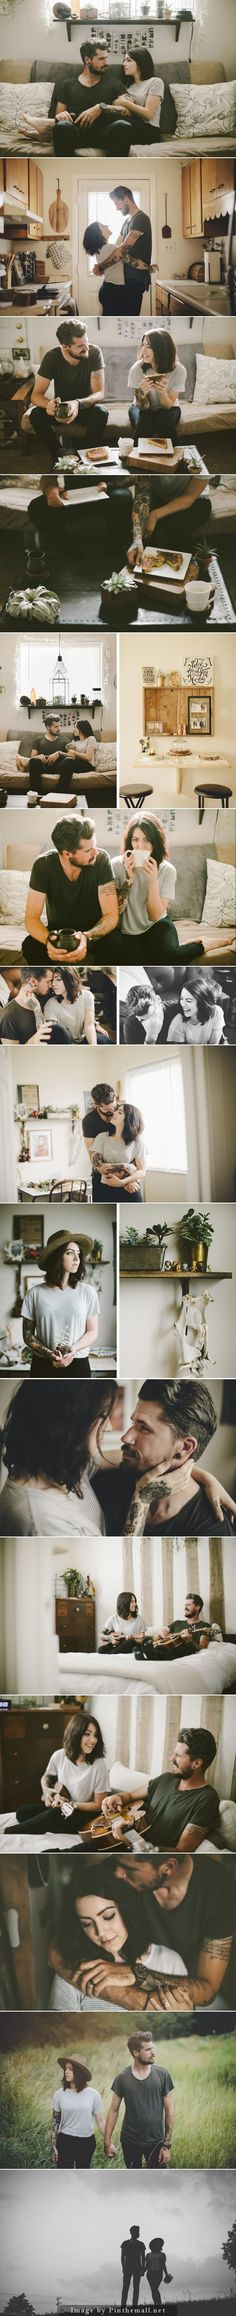 http://thegoodrichwife.typepad.com/home/2014/07/a-peek-into-the-life-of-a-goodrich-wife.html